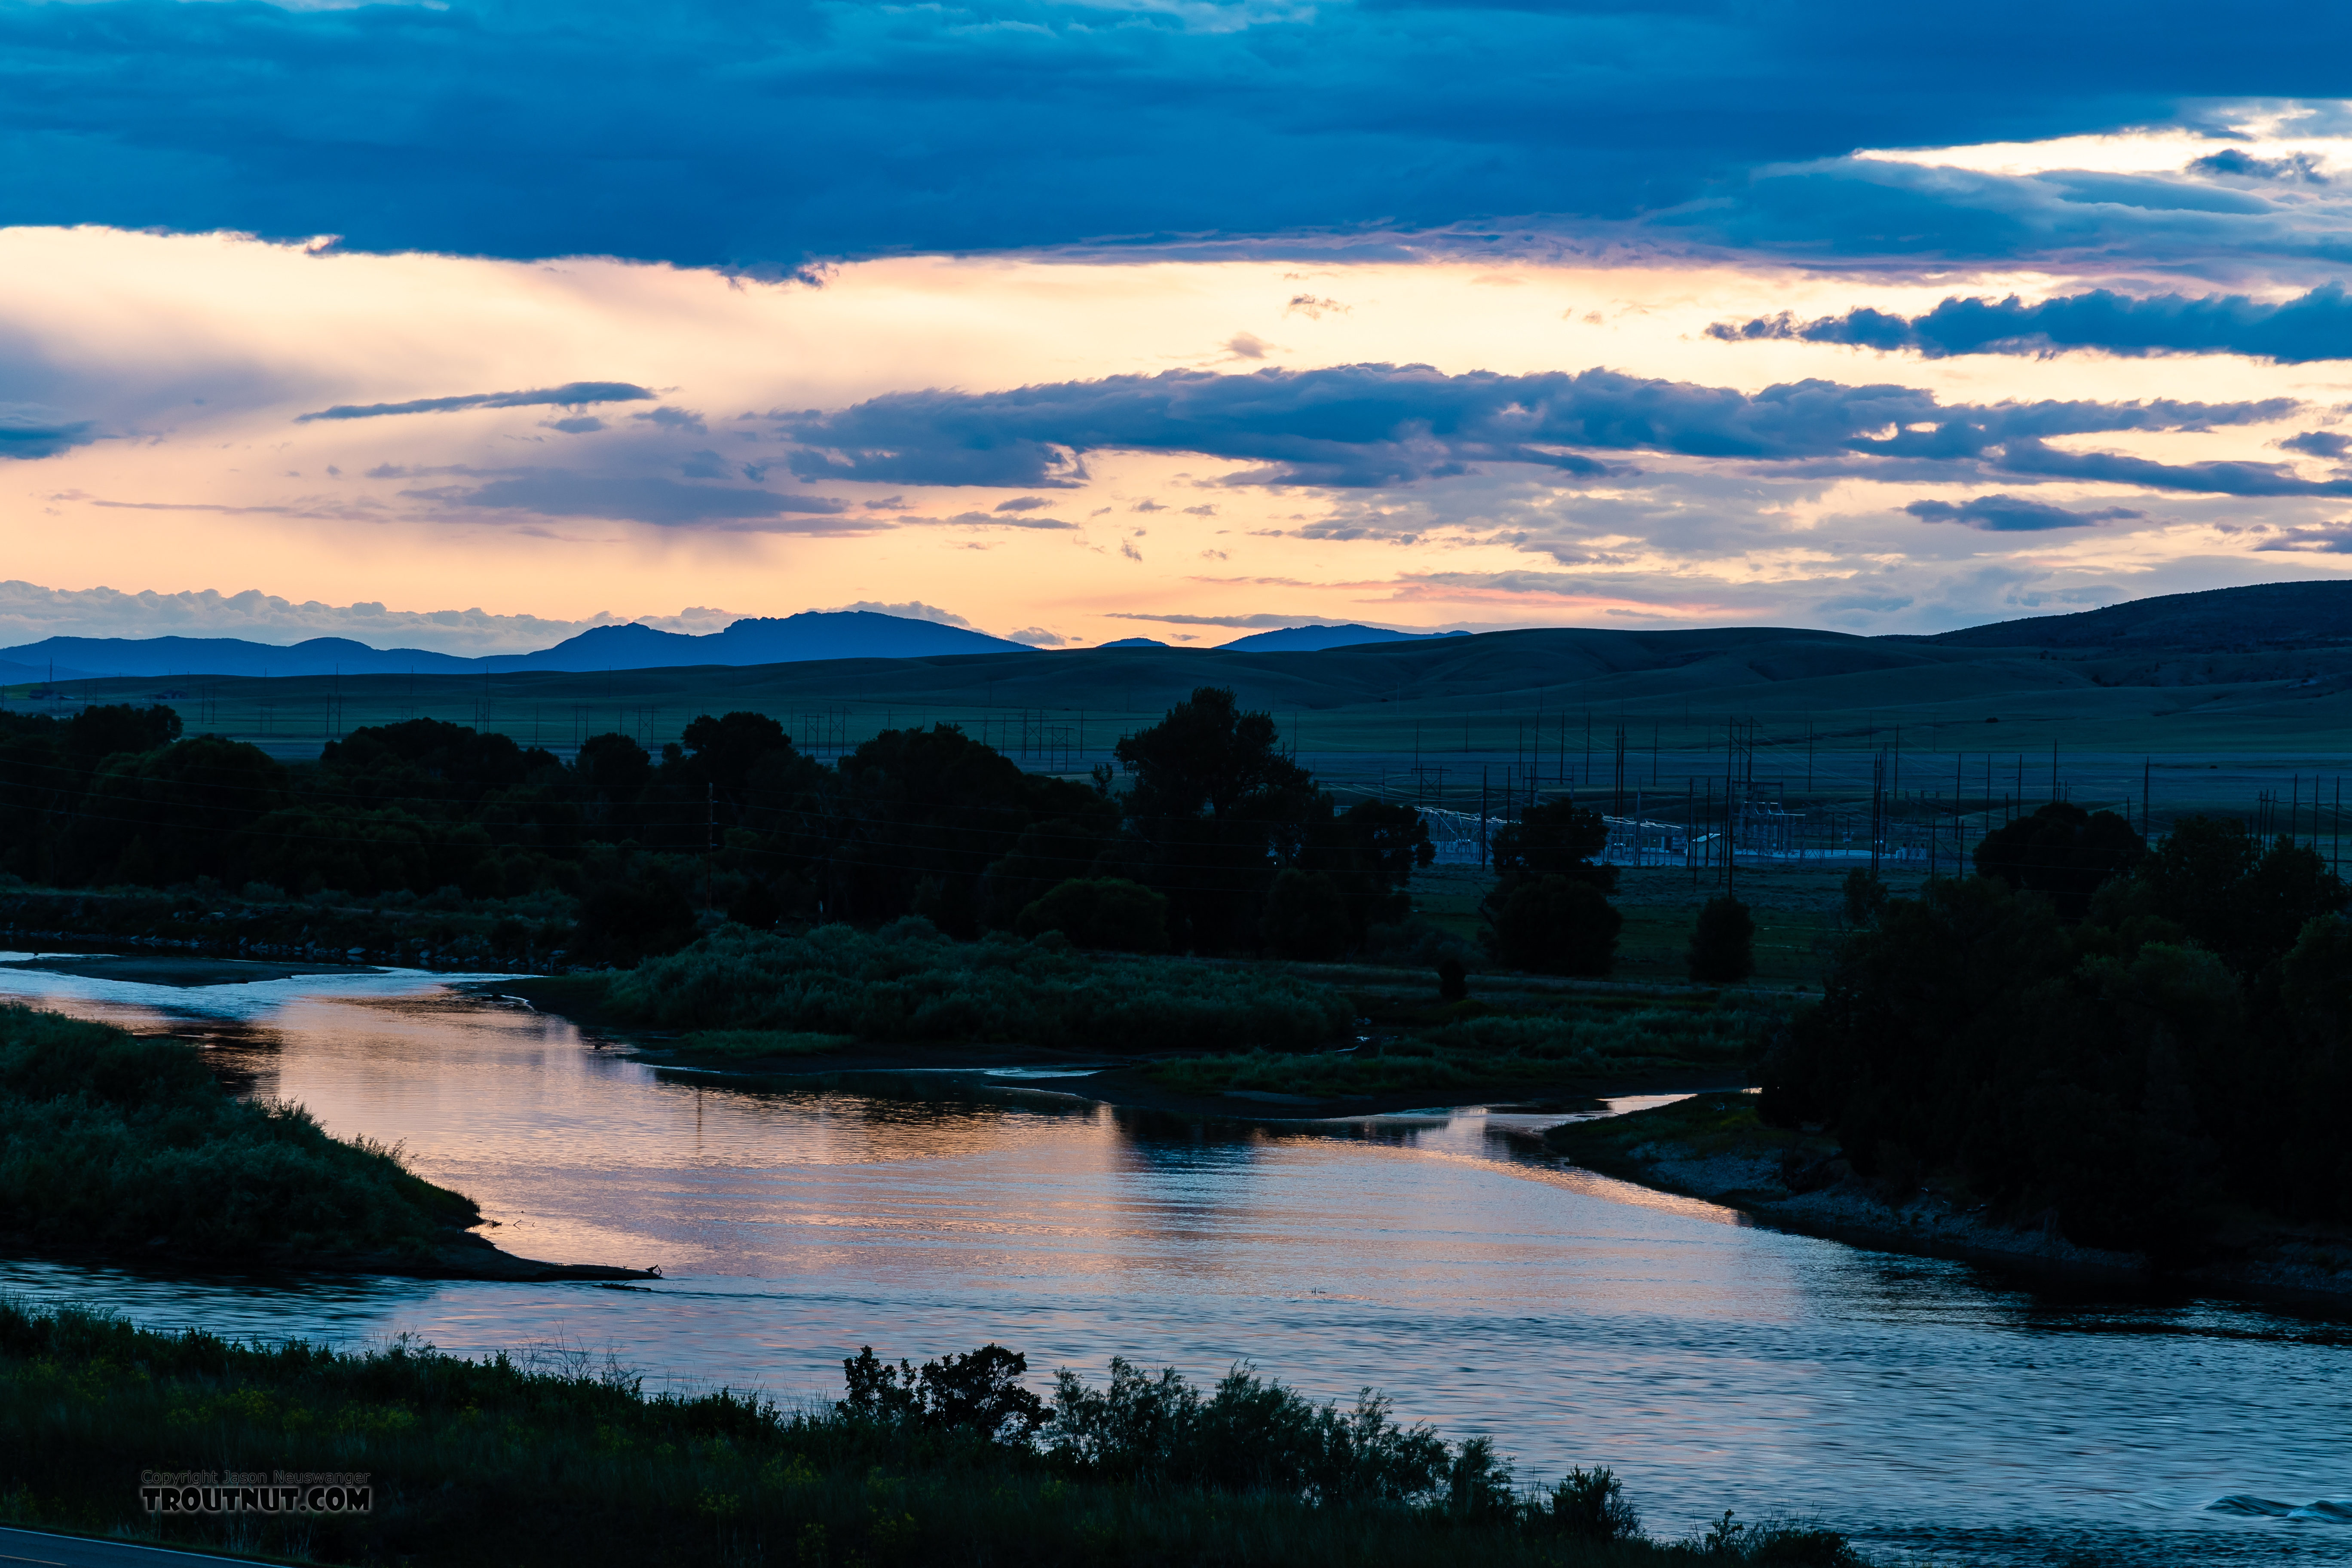 From the Missouri River in Montana.